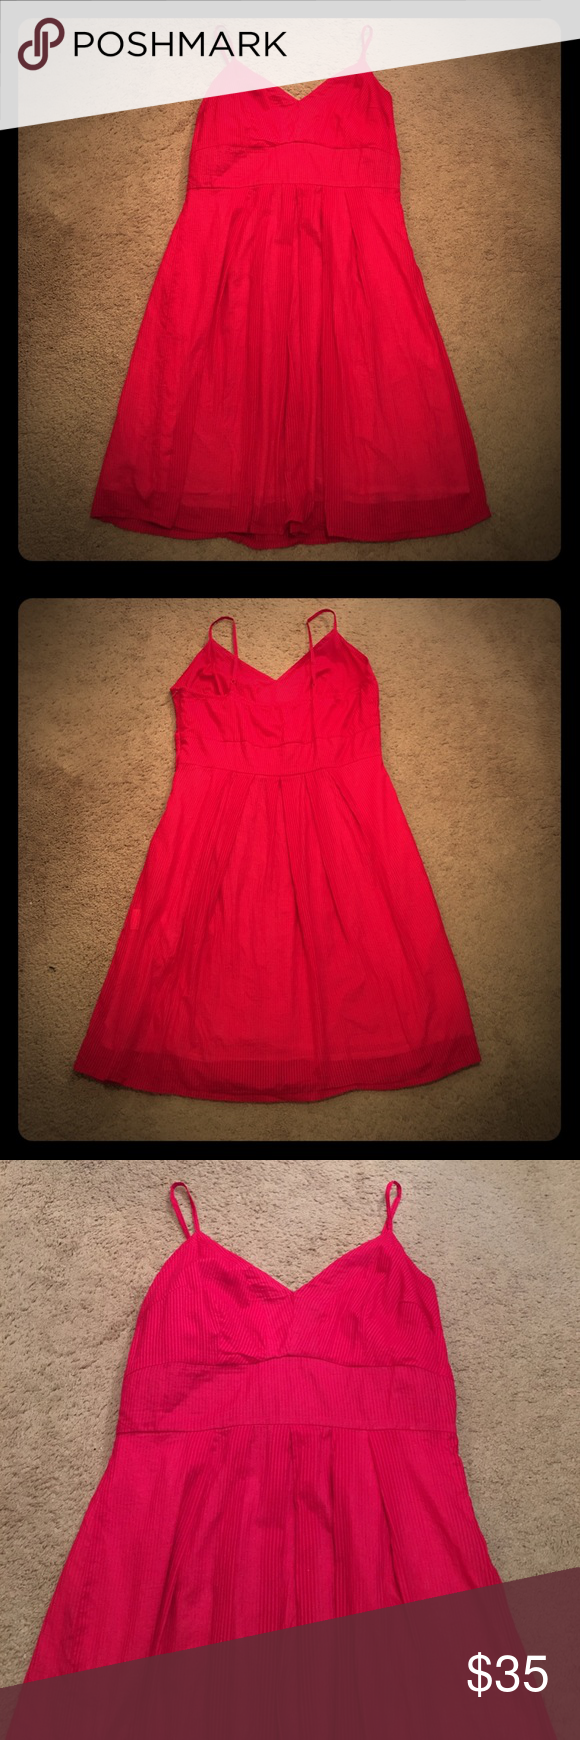 🌶HOT🌶 Red pinup style dress EUC fiery red dress with adjustable straps and side zipper. Fully lined and has good coverage over bust. Not Anthro but very similar. Anthropologie Dresses Midi